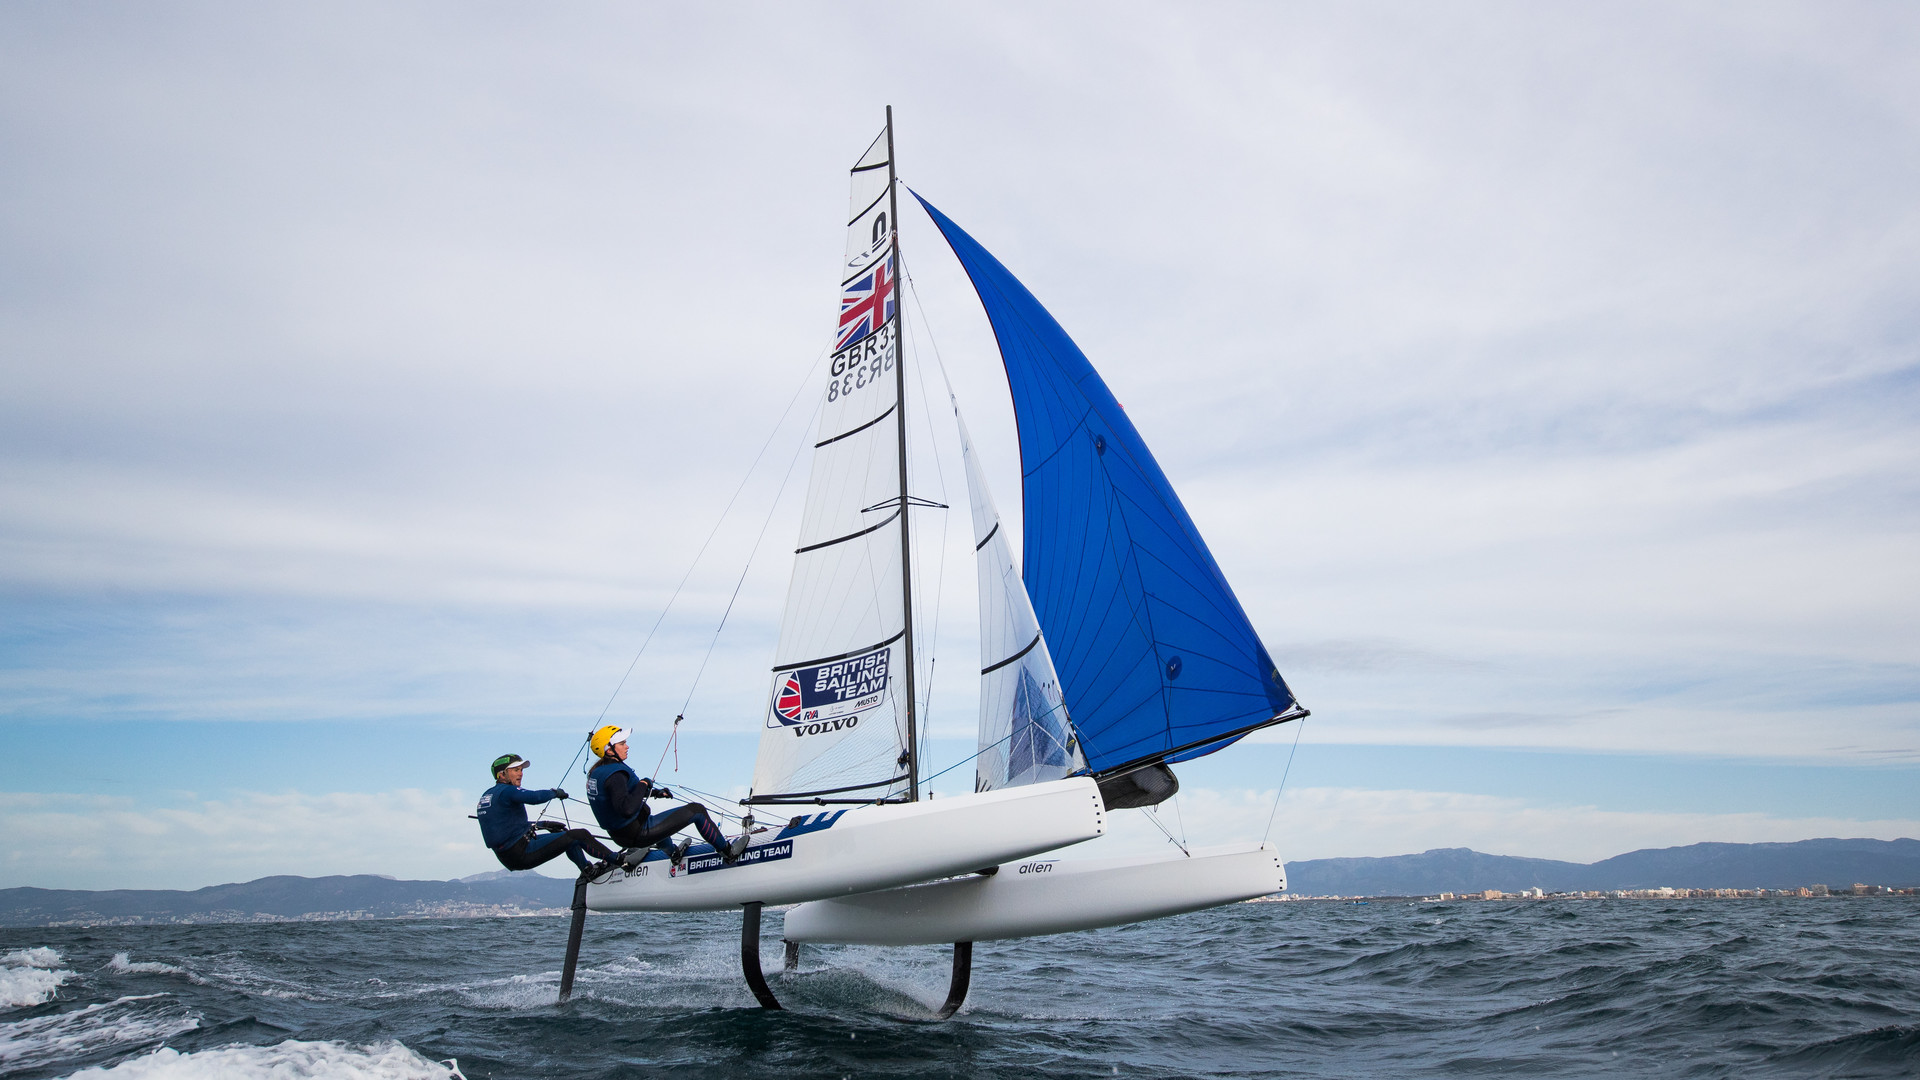 Chris Rashley and Laura Marimon, Nacra 17